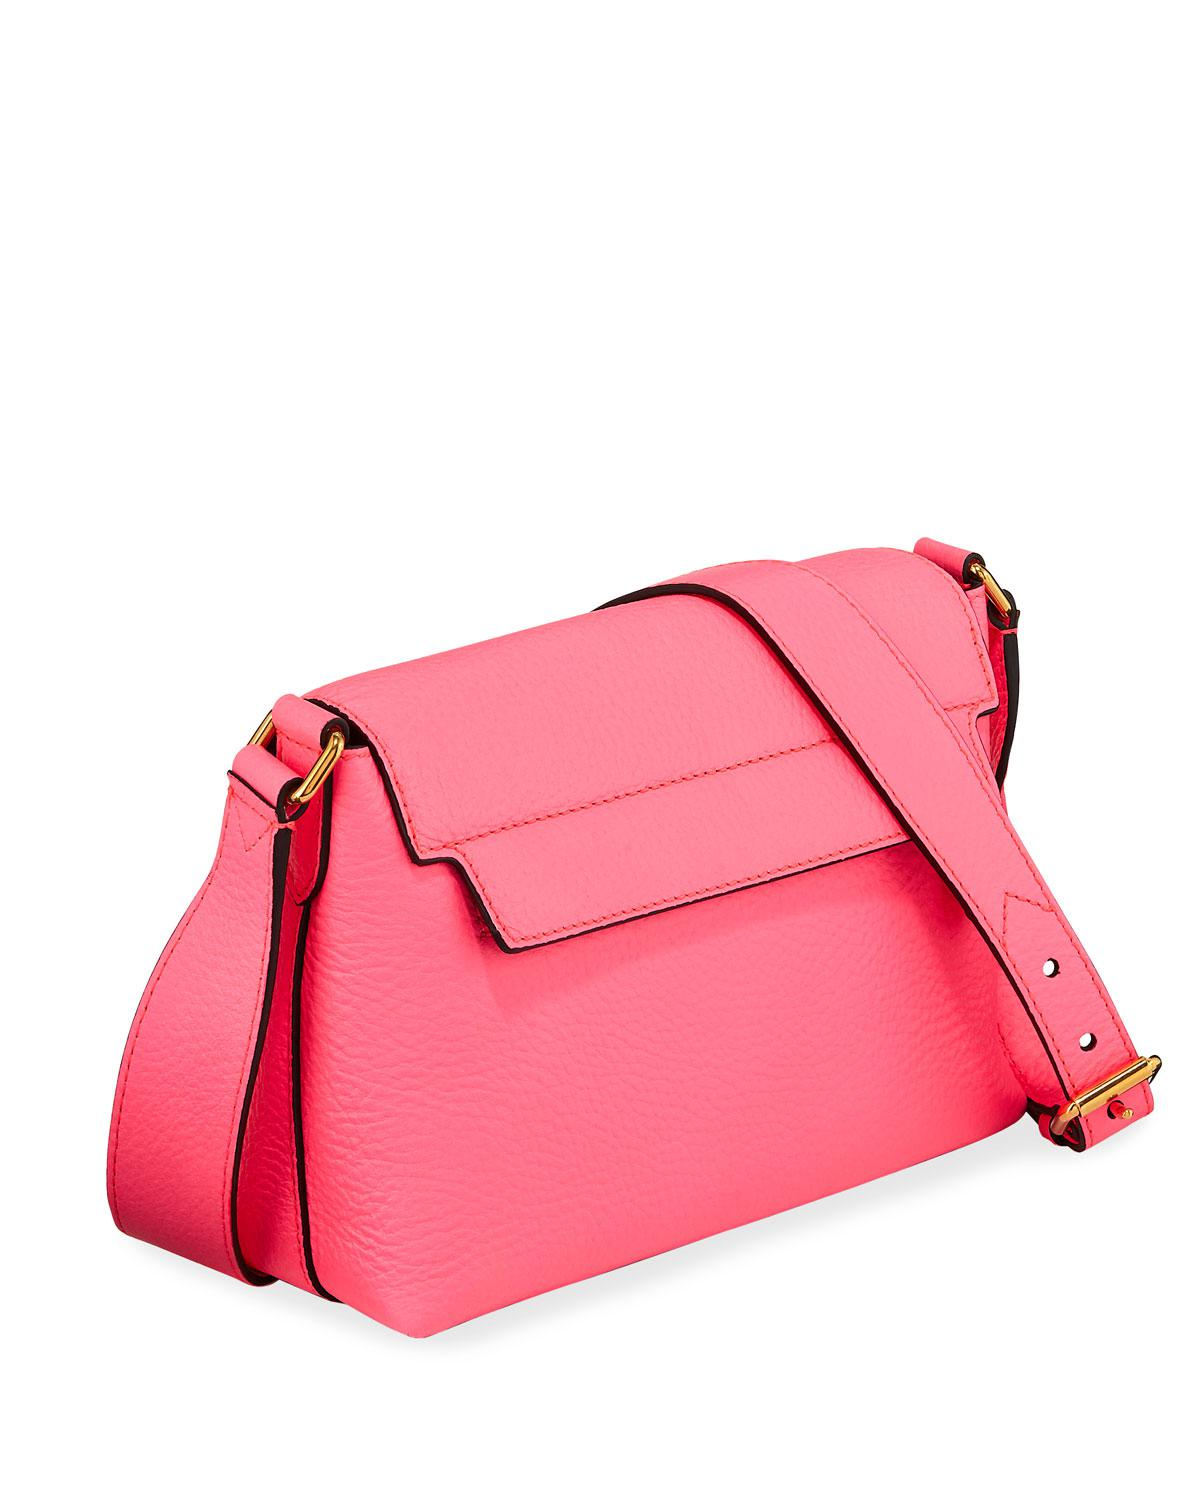 36bd32f4618 Lyst - Burberry Burleigh Small Soft Leather Crossbody Bag in Pink